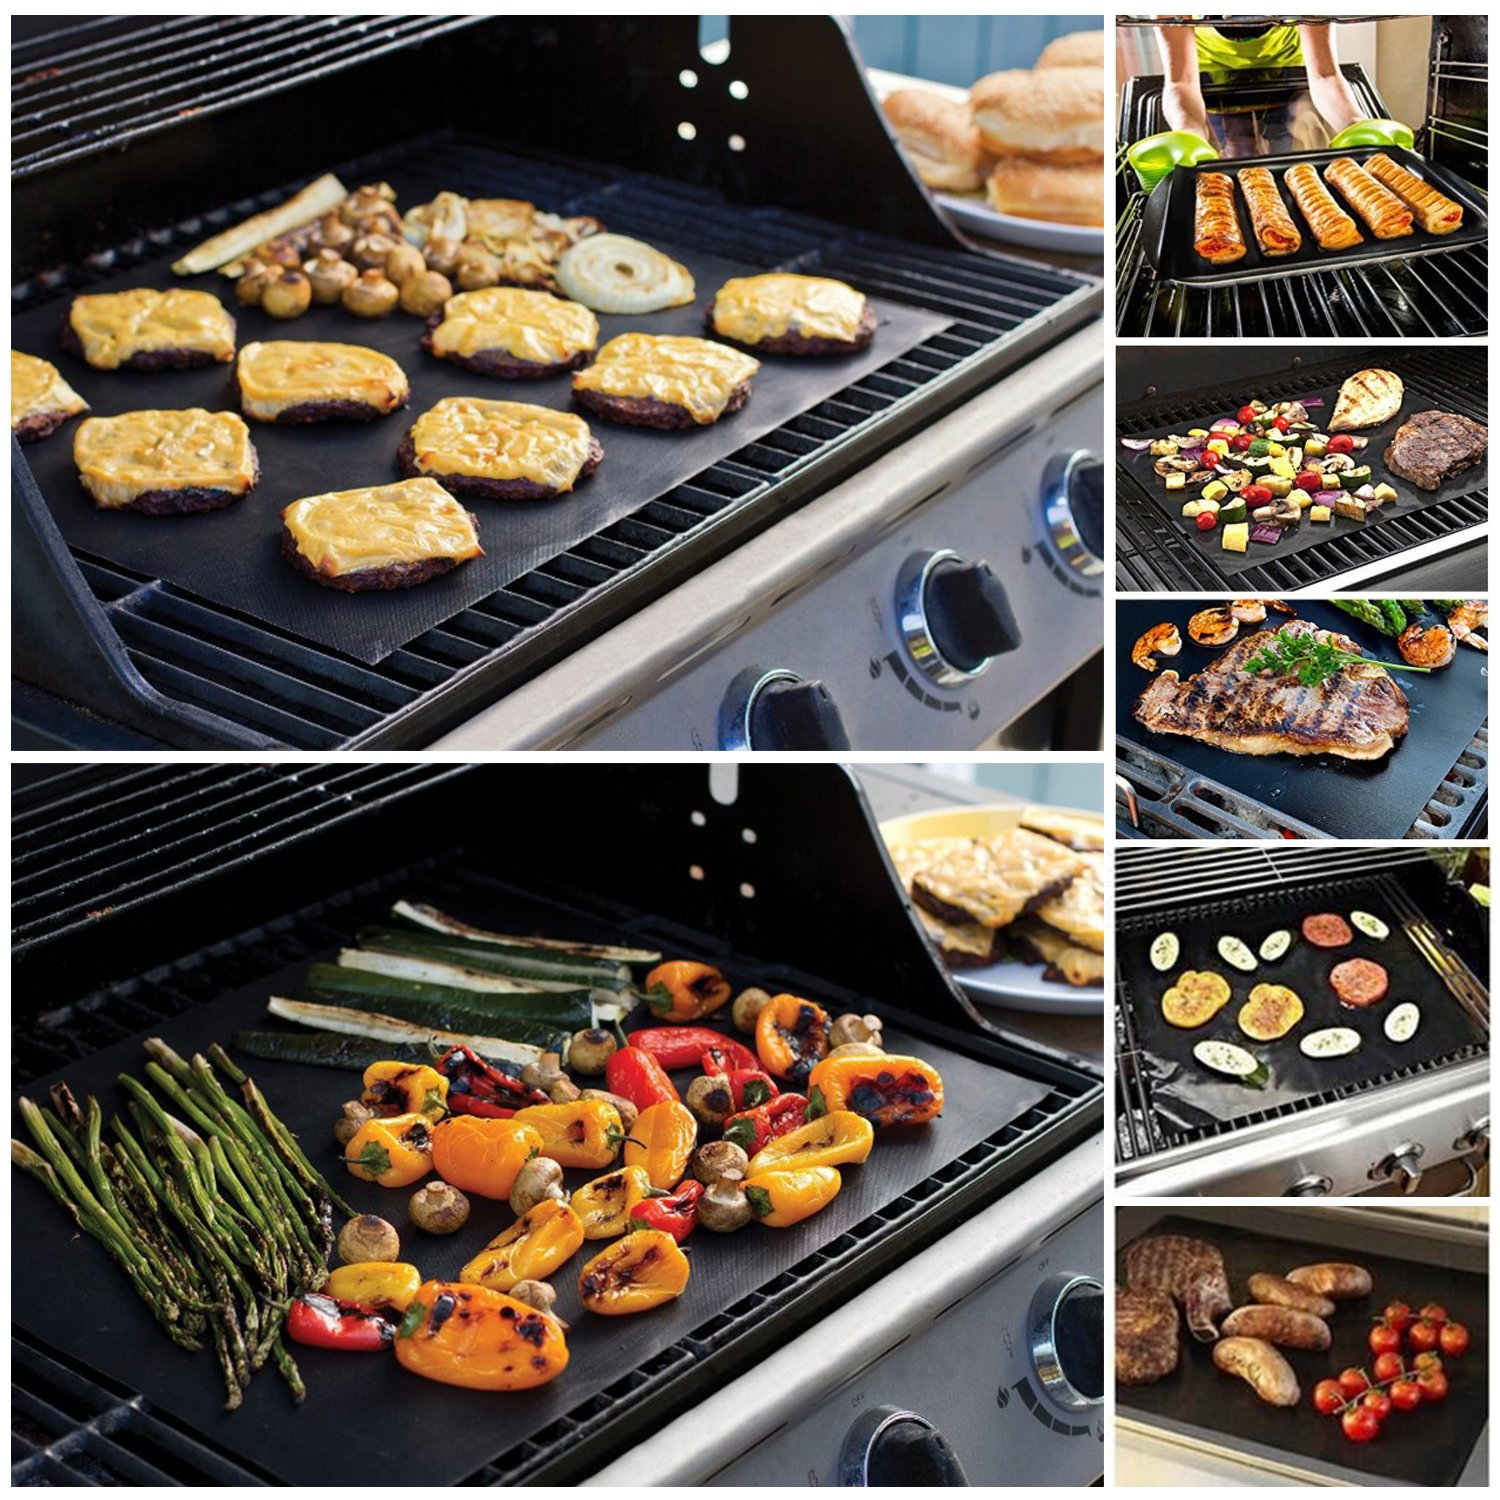 FLY5D BBQ Grill Mat and Bake Mat Set of 5 Non Stick Grill & Baking Mats - Reusable, PFOA Free, FDA Approved, Easy to Clean for Gas, Charcoal, Electric Grill, Oven, Grilling Meat (Copper)